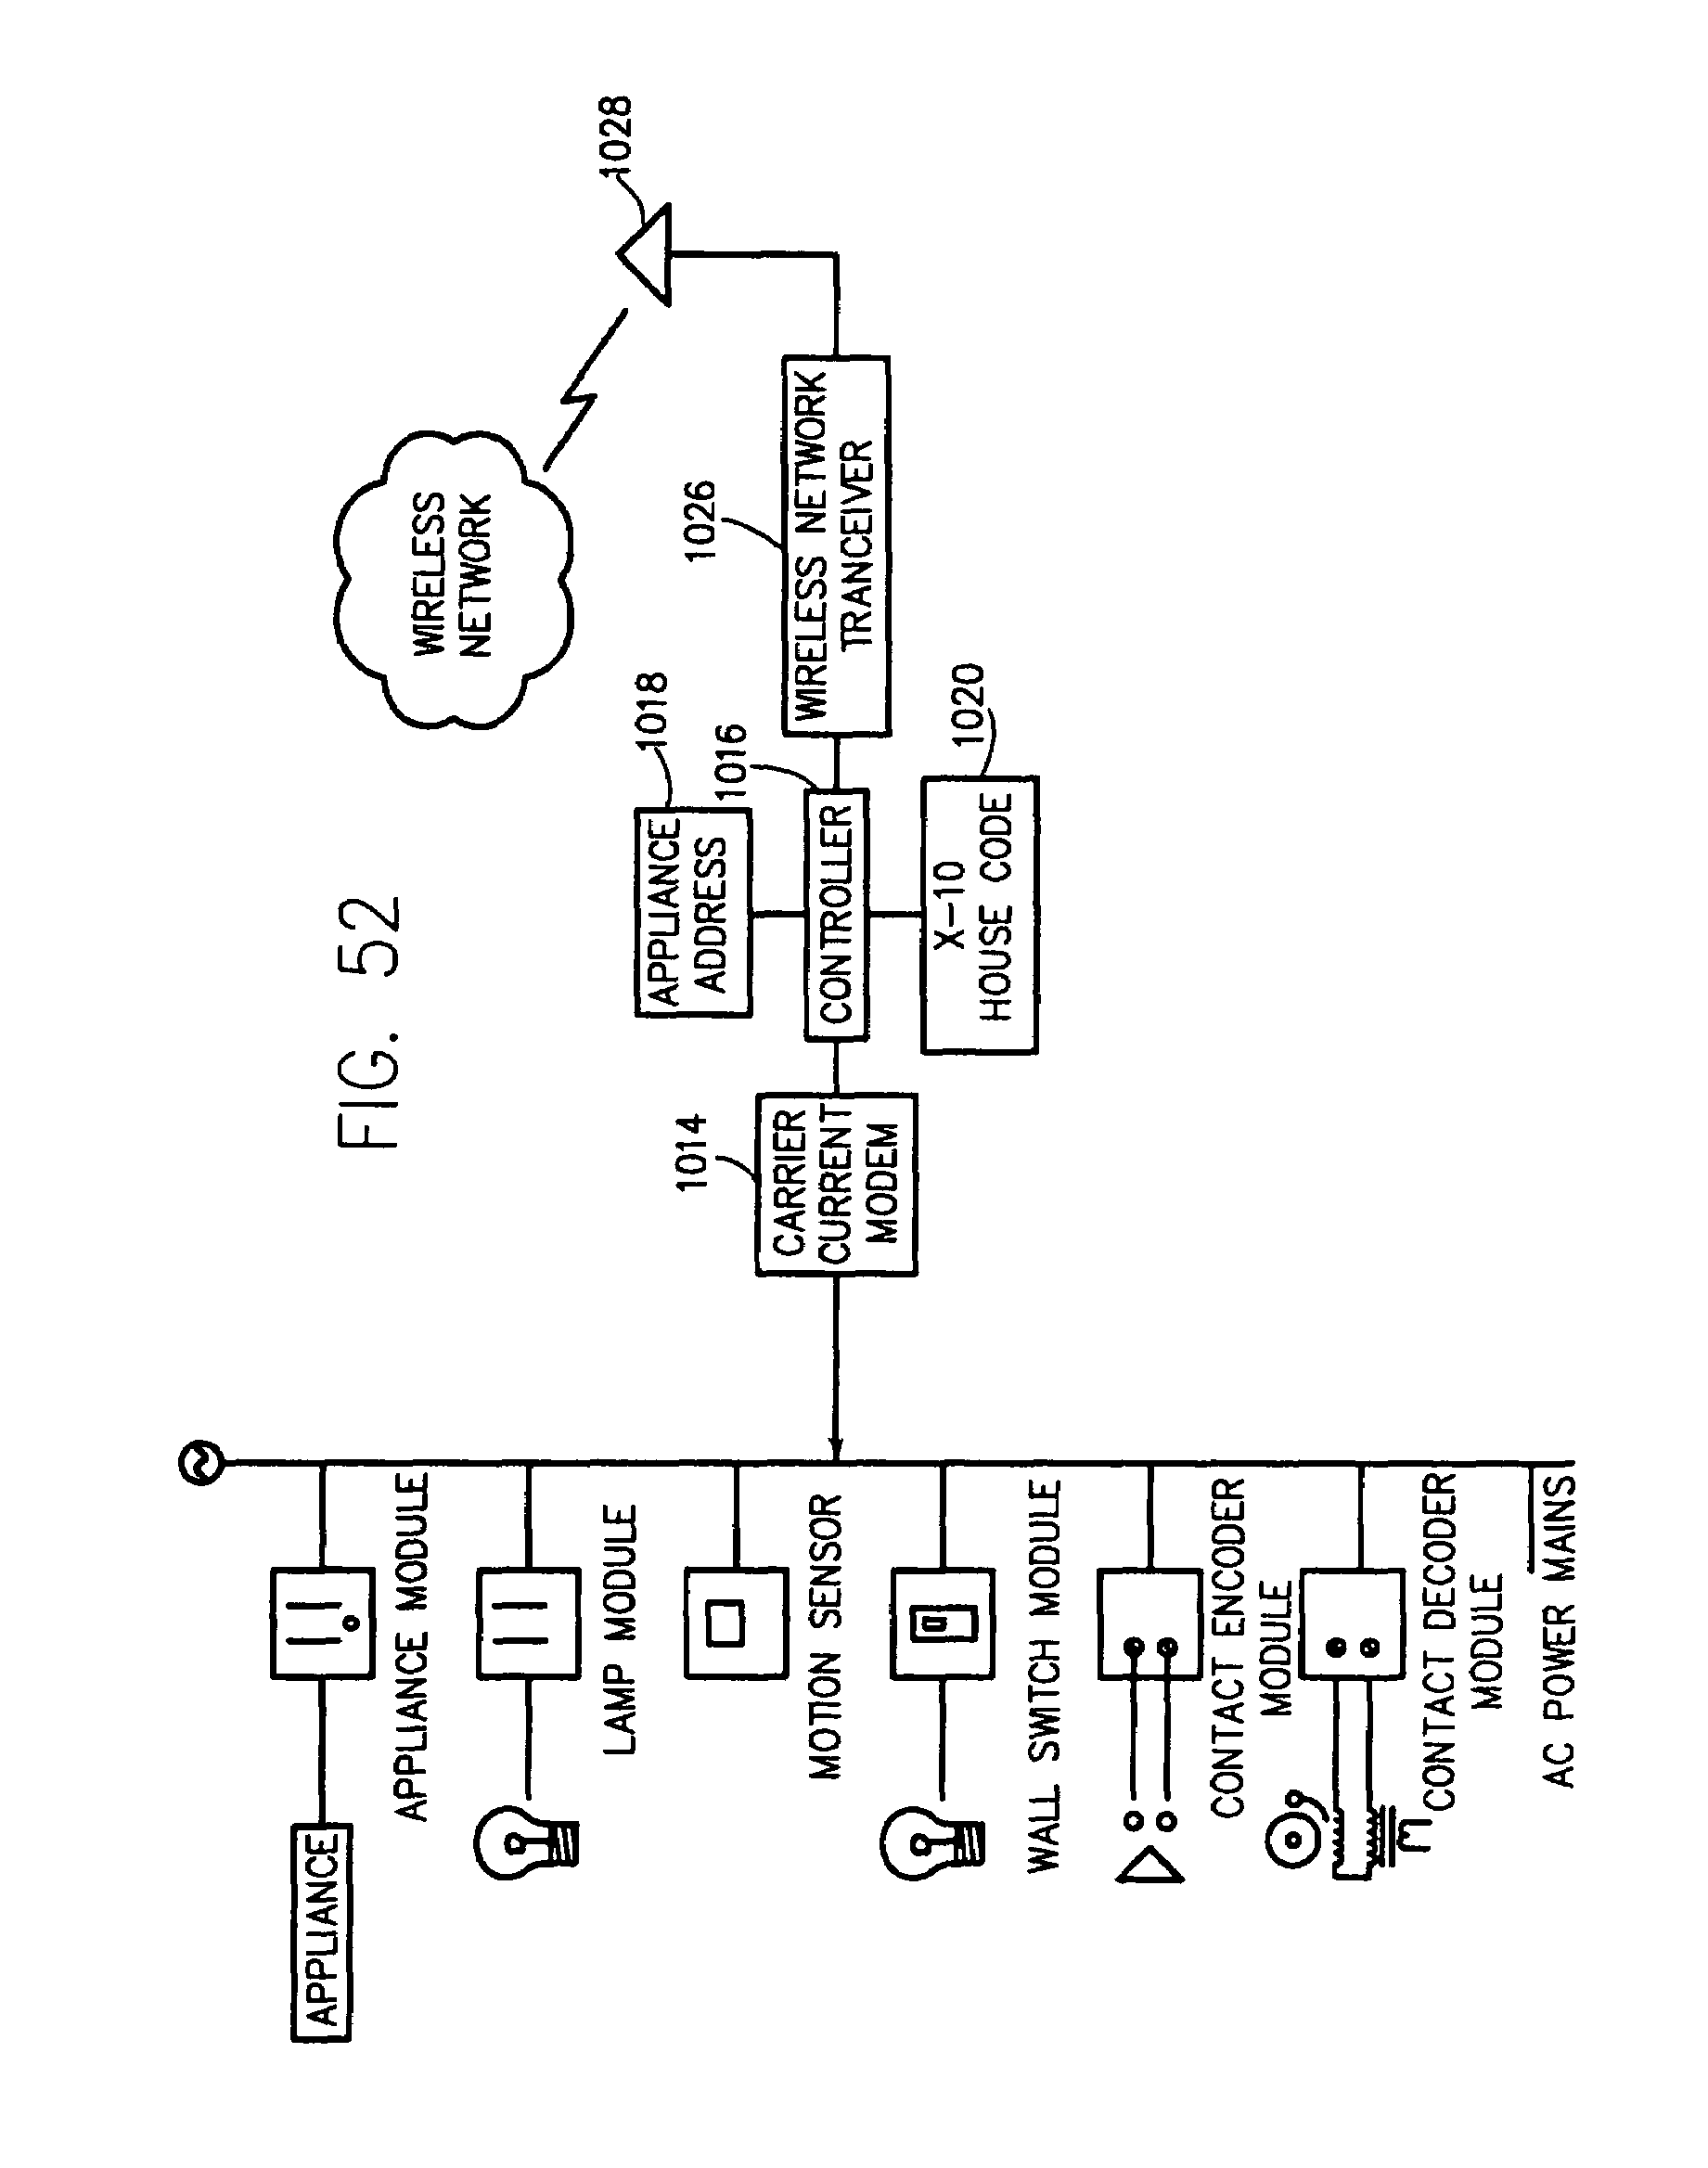 Patent Us 6970183 B1 Wiring Power Window Switches Likewise 3 Wire Proximity Sensor Images